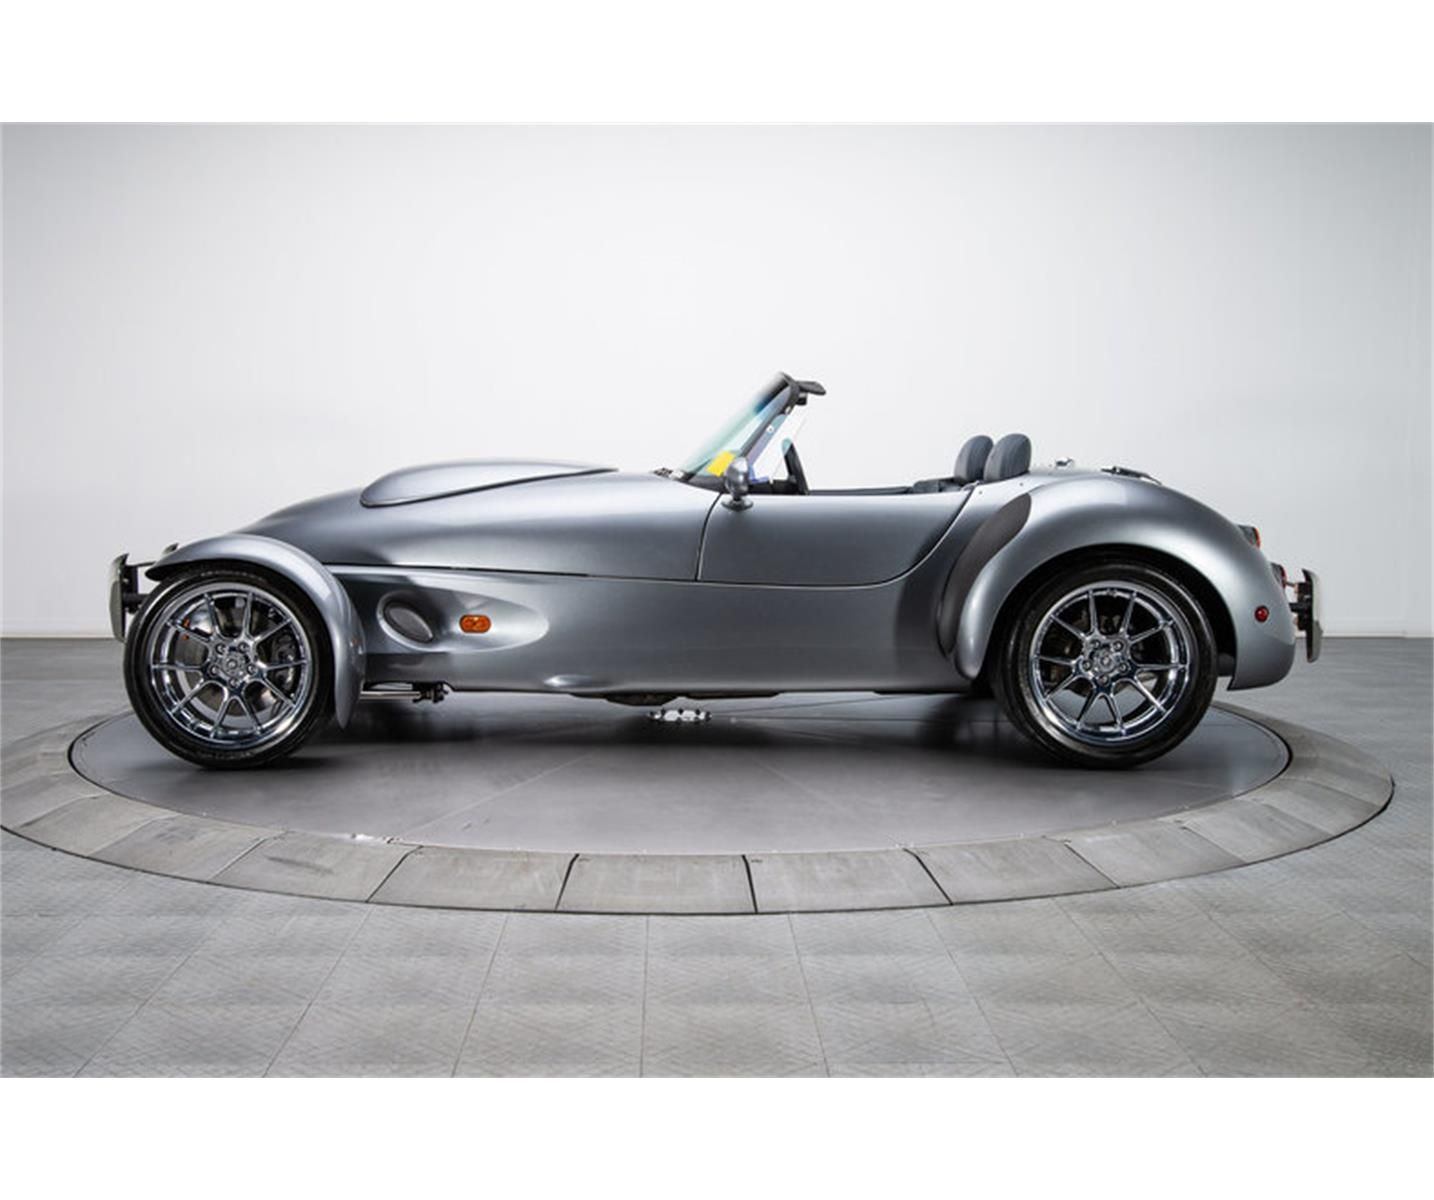 Large Photo of '99 AIV Roadster NTGX Coccinelle